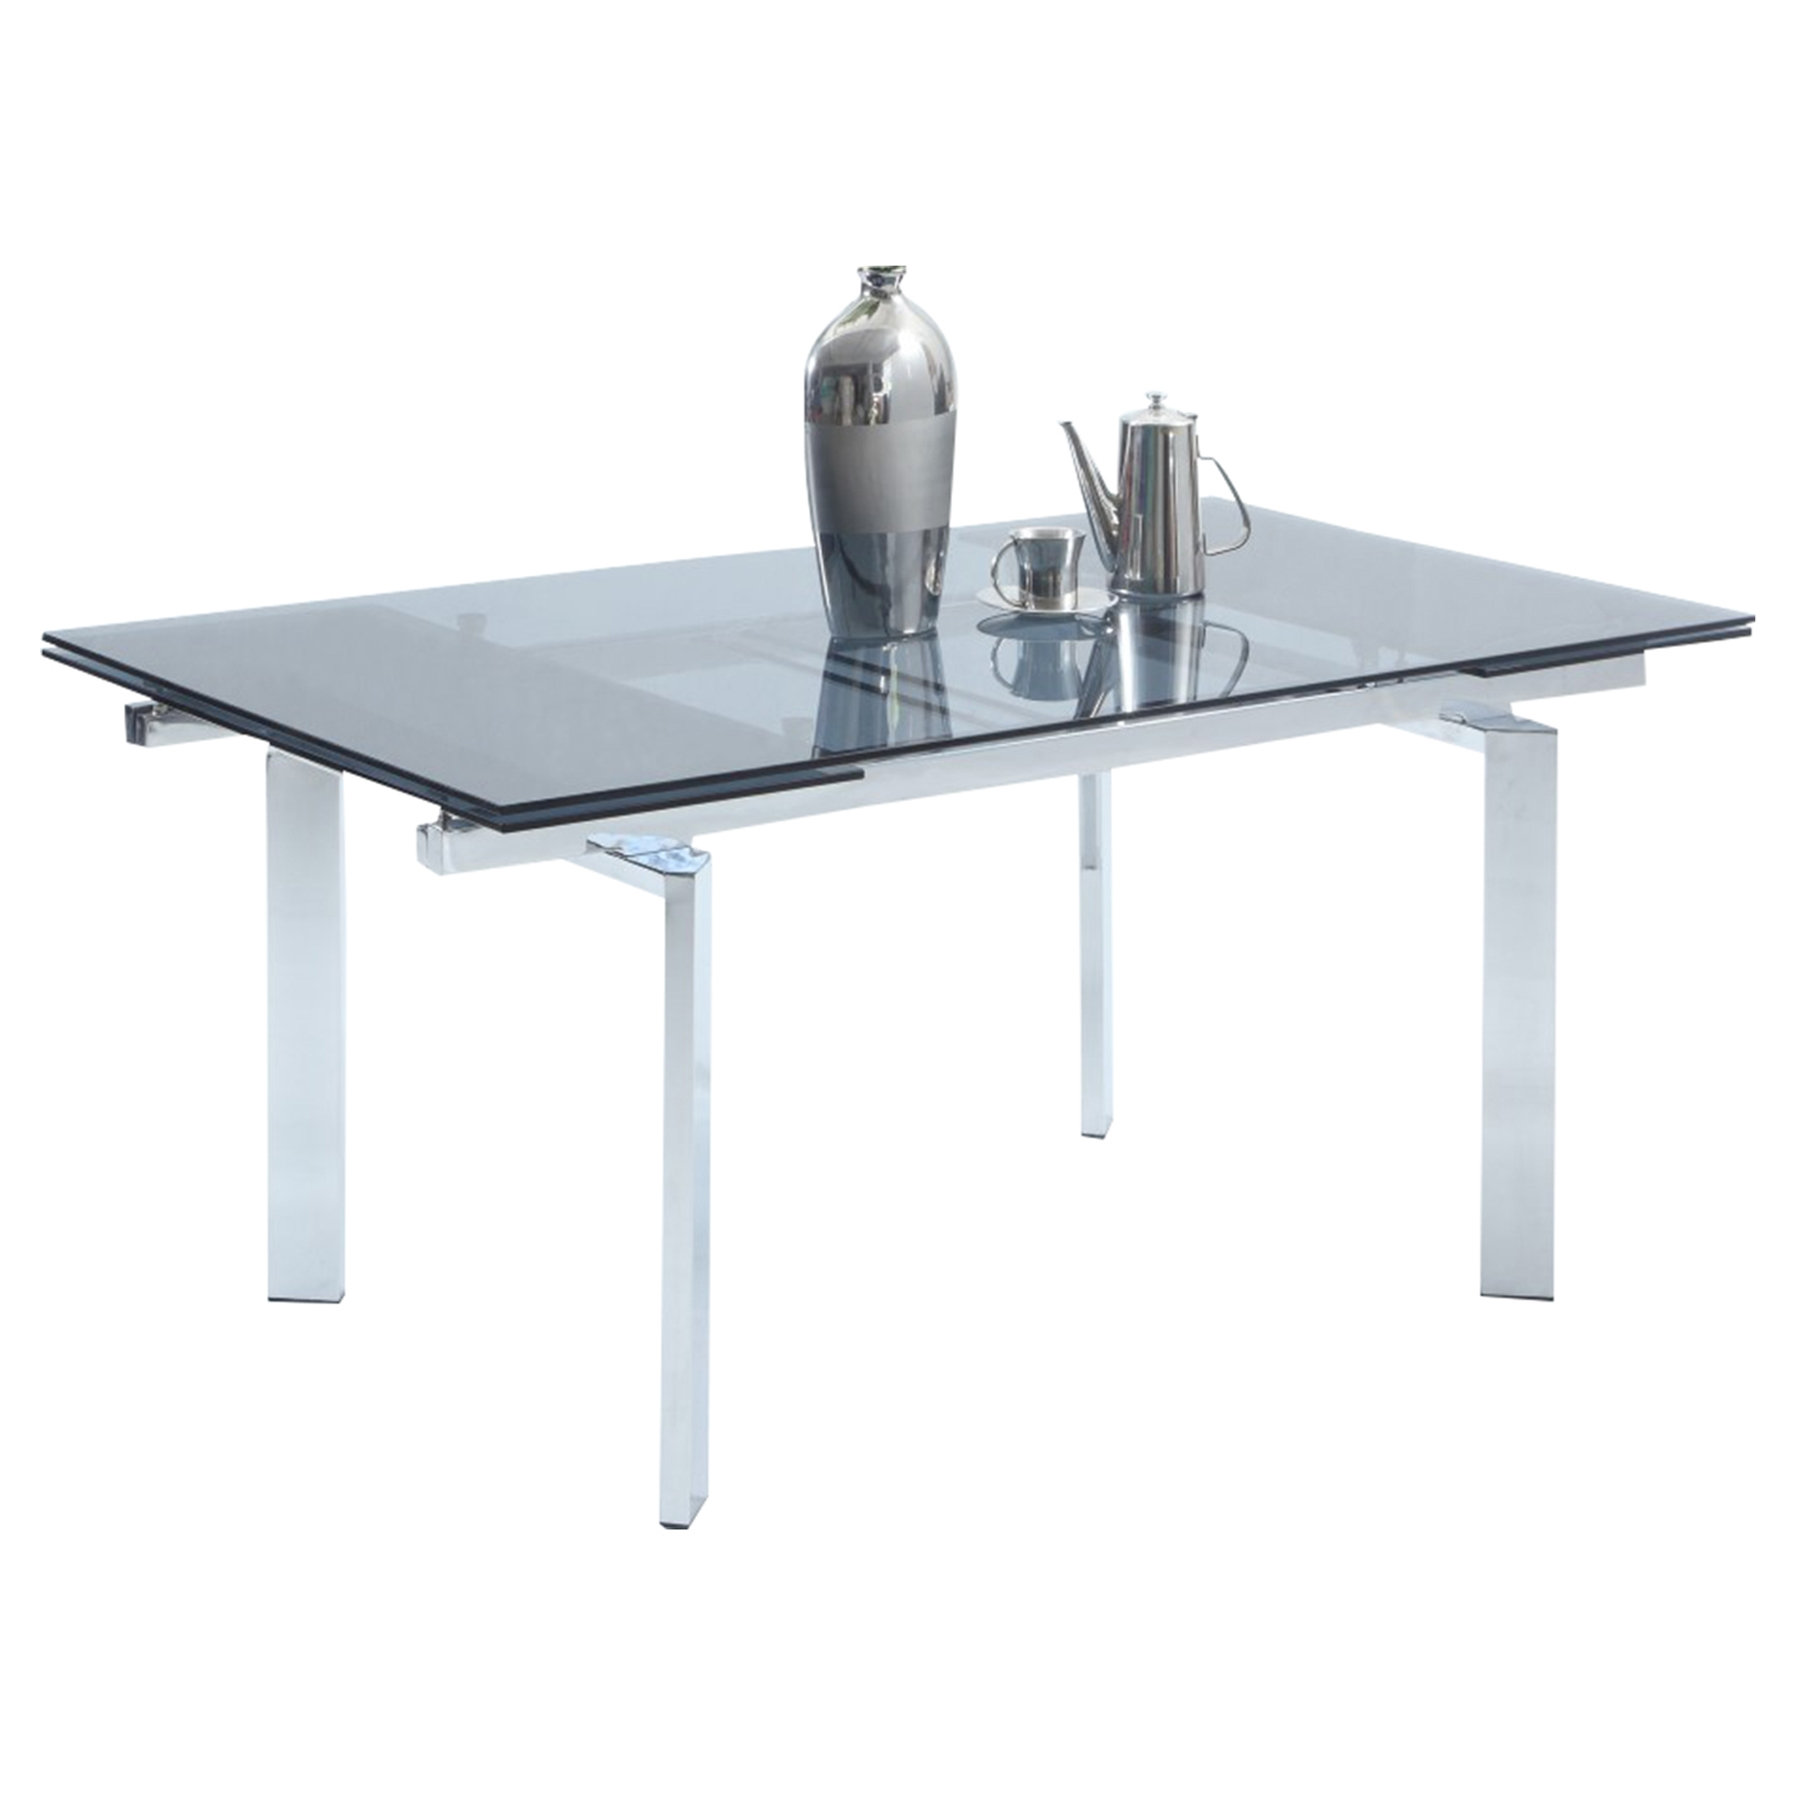 Paisley Extension Dining Table - Glass Top, Chrome Base